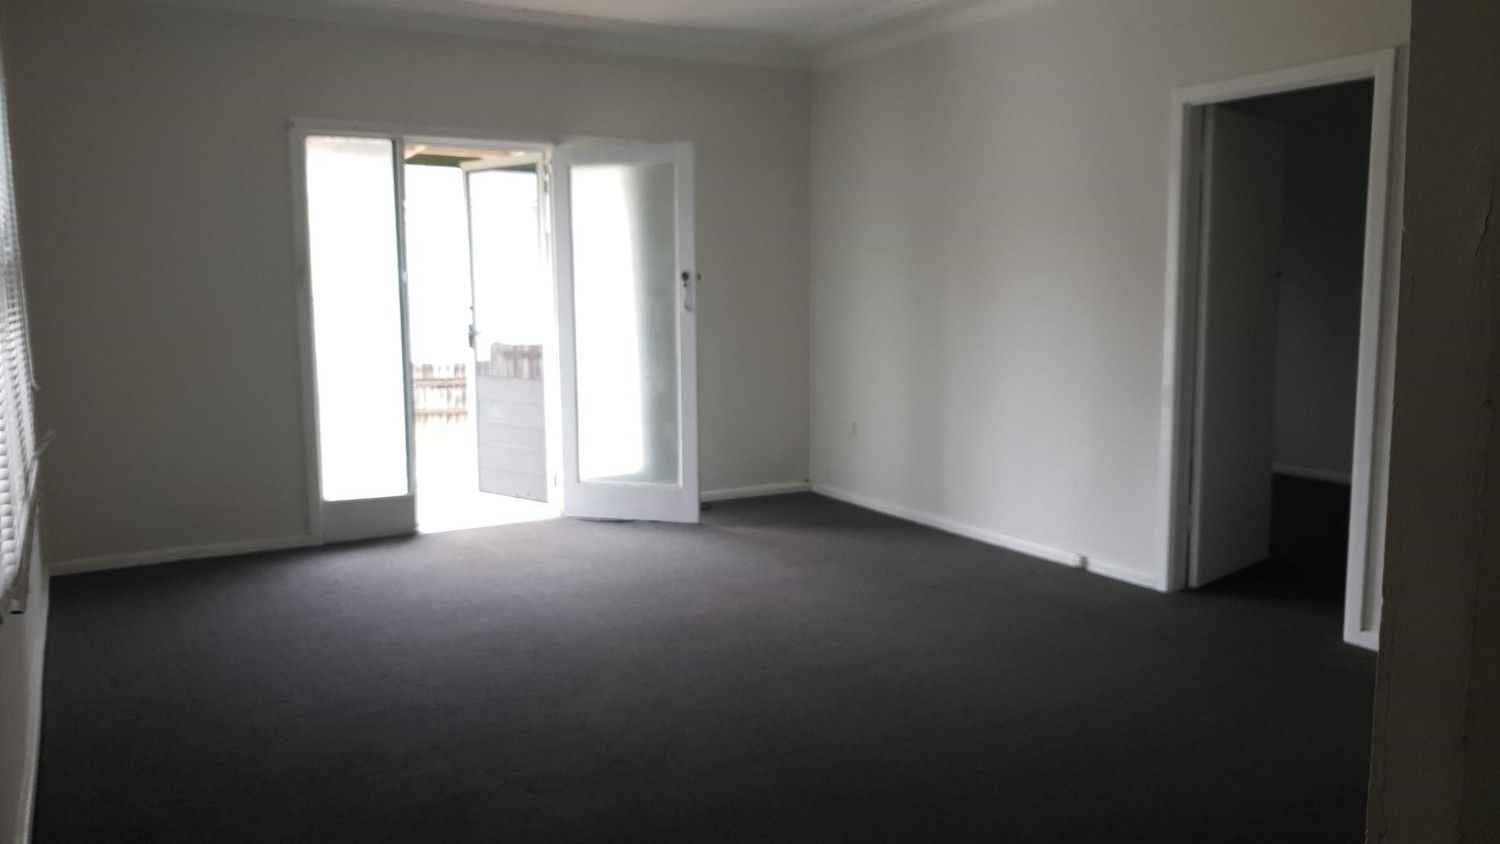 1/35 Thames Street, West Wollongong NSW 2500, Image 2